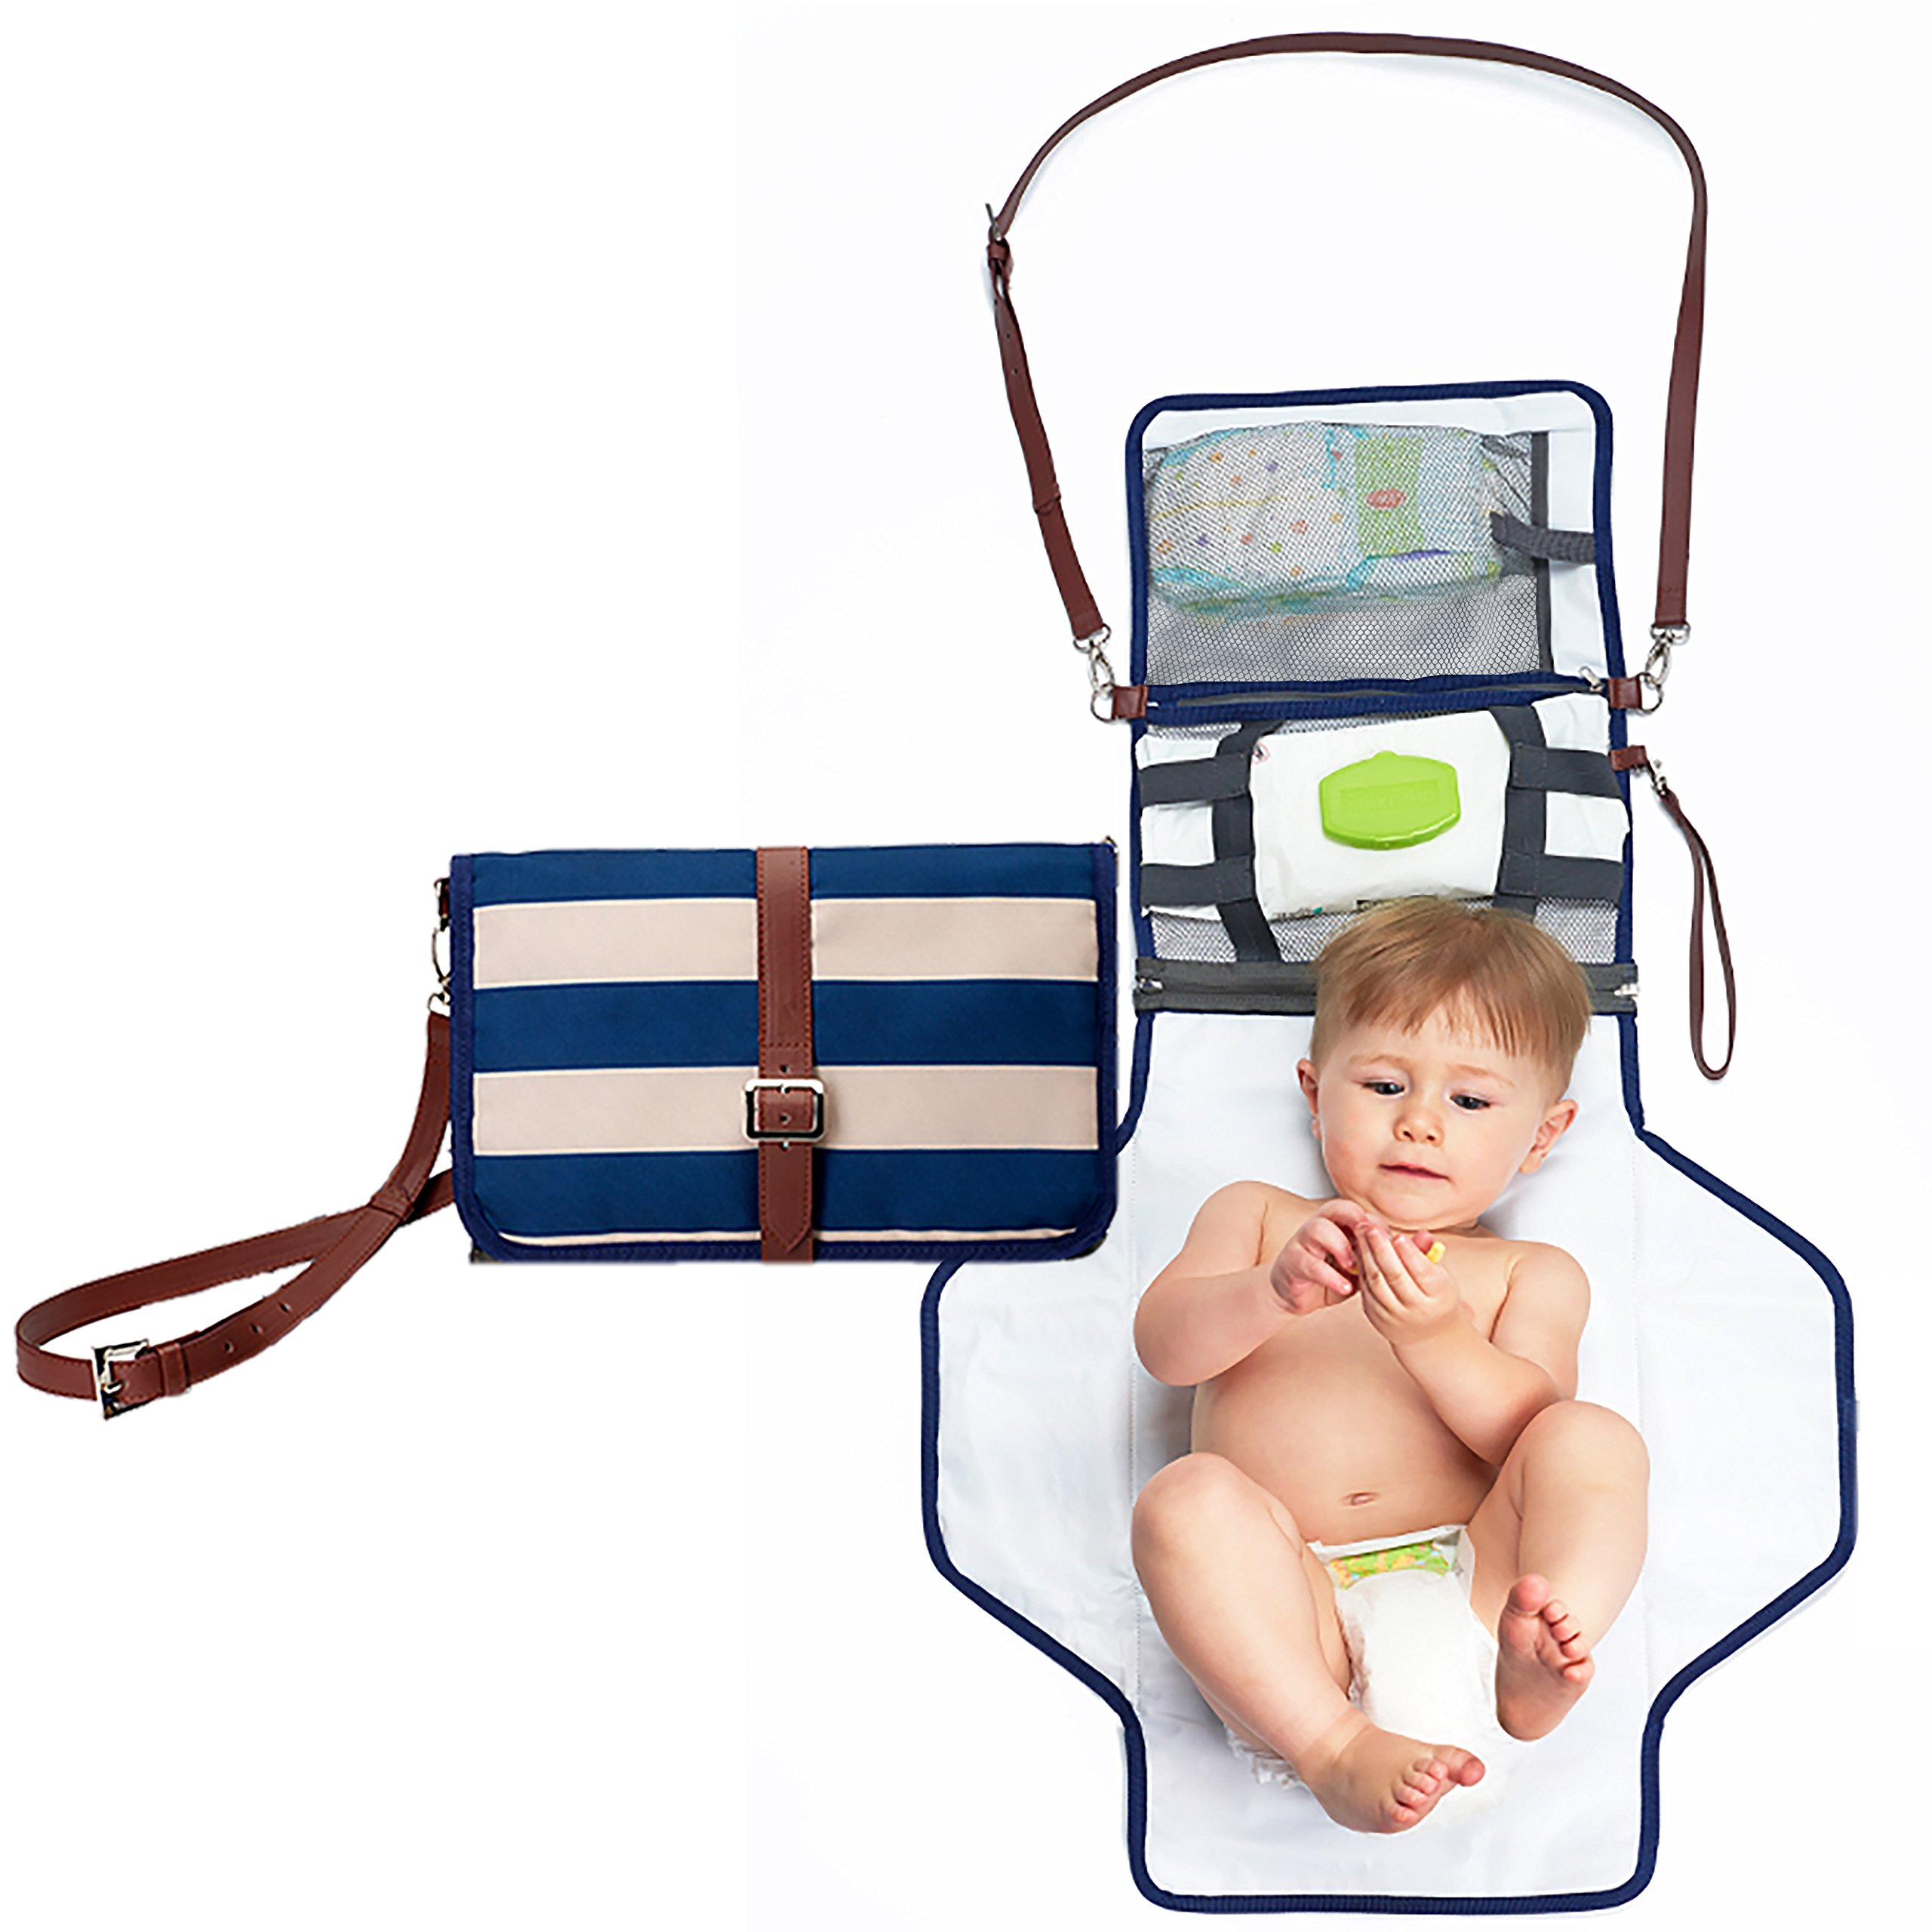 Portable Changing Pad Diaper Clutch - Small Diaper Bag Purse w/Shoulder Strap | Changing Station w/Extra Storage for Diapers, Wipes Holder, Essentials, and a Baby Outfit | Waterproof, BPA Free